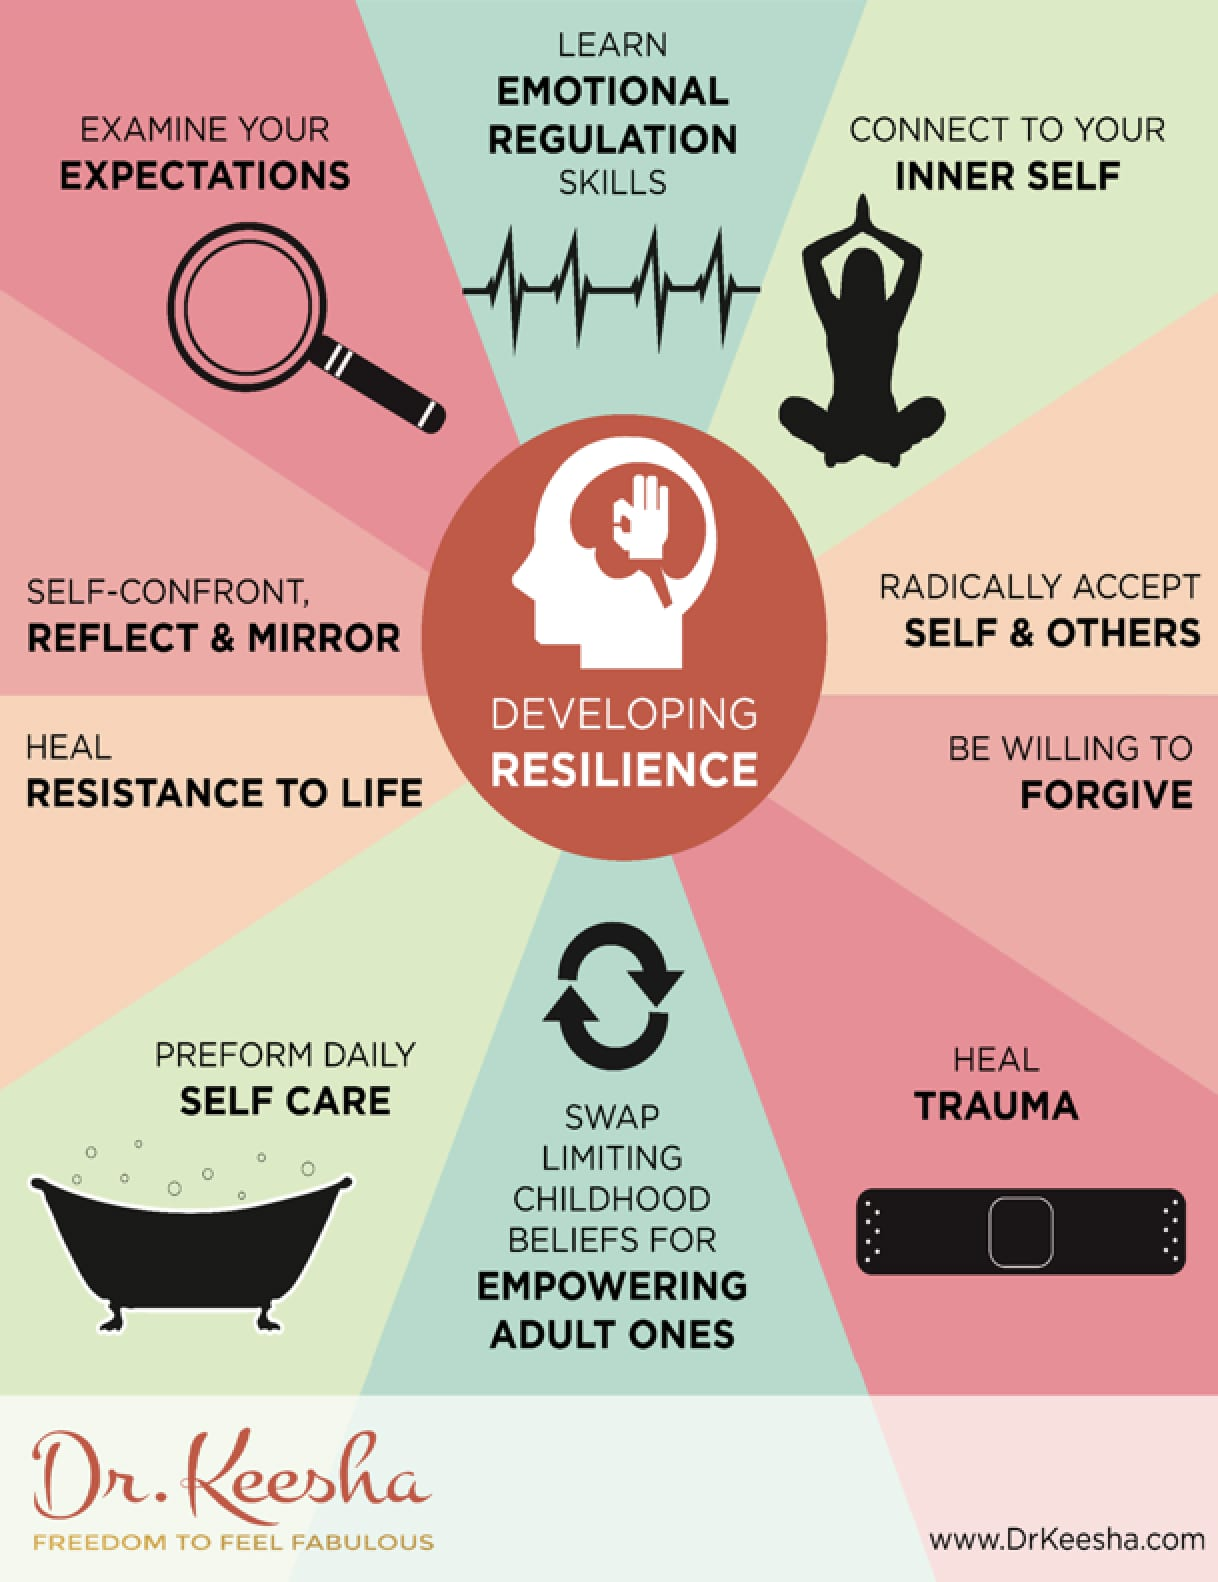 Five Steps For Developing Resilience